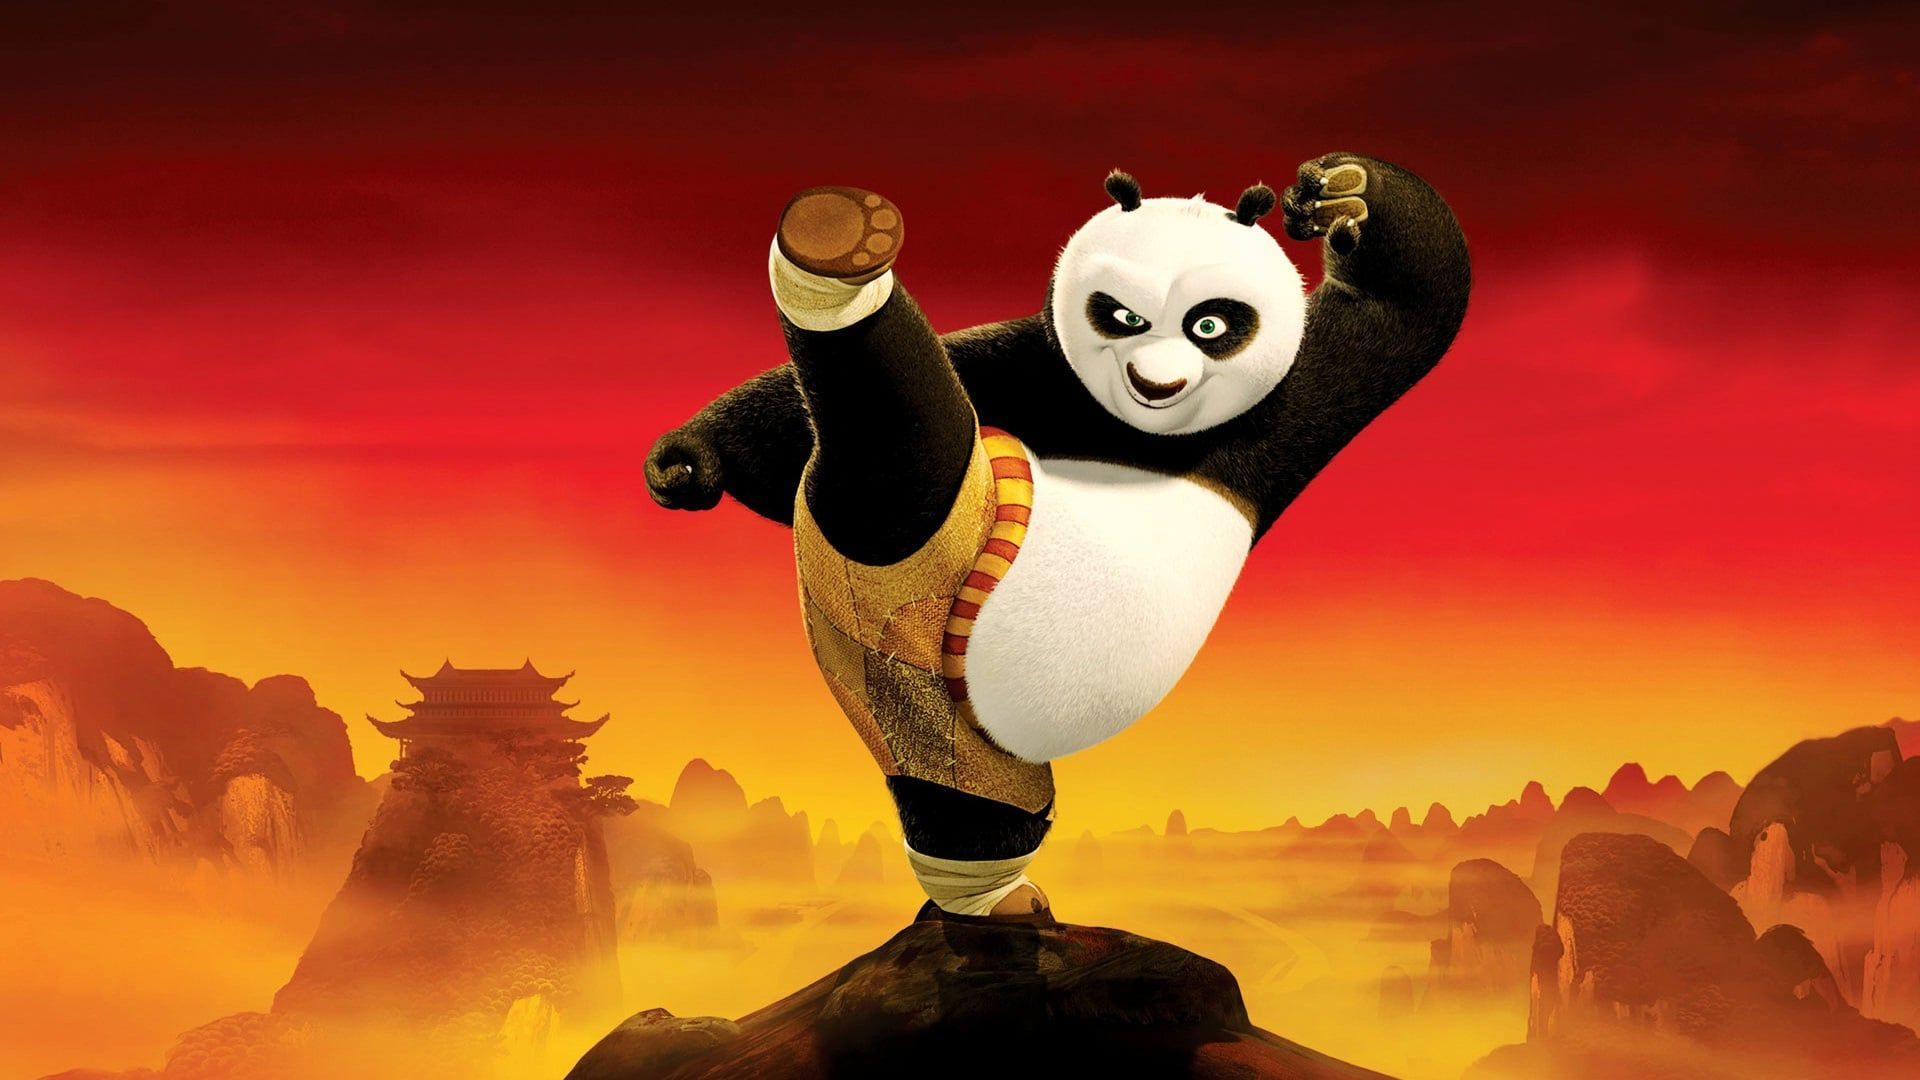 kung fu panda wallpapers hd wallpapers 1920×1080 kung fu panda 3